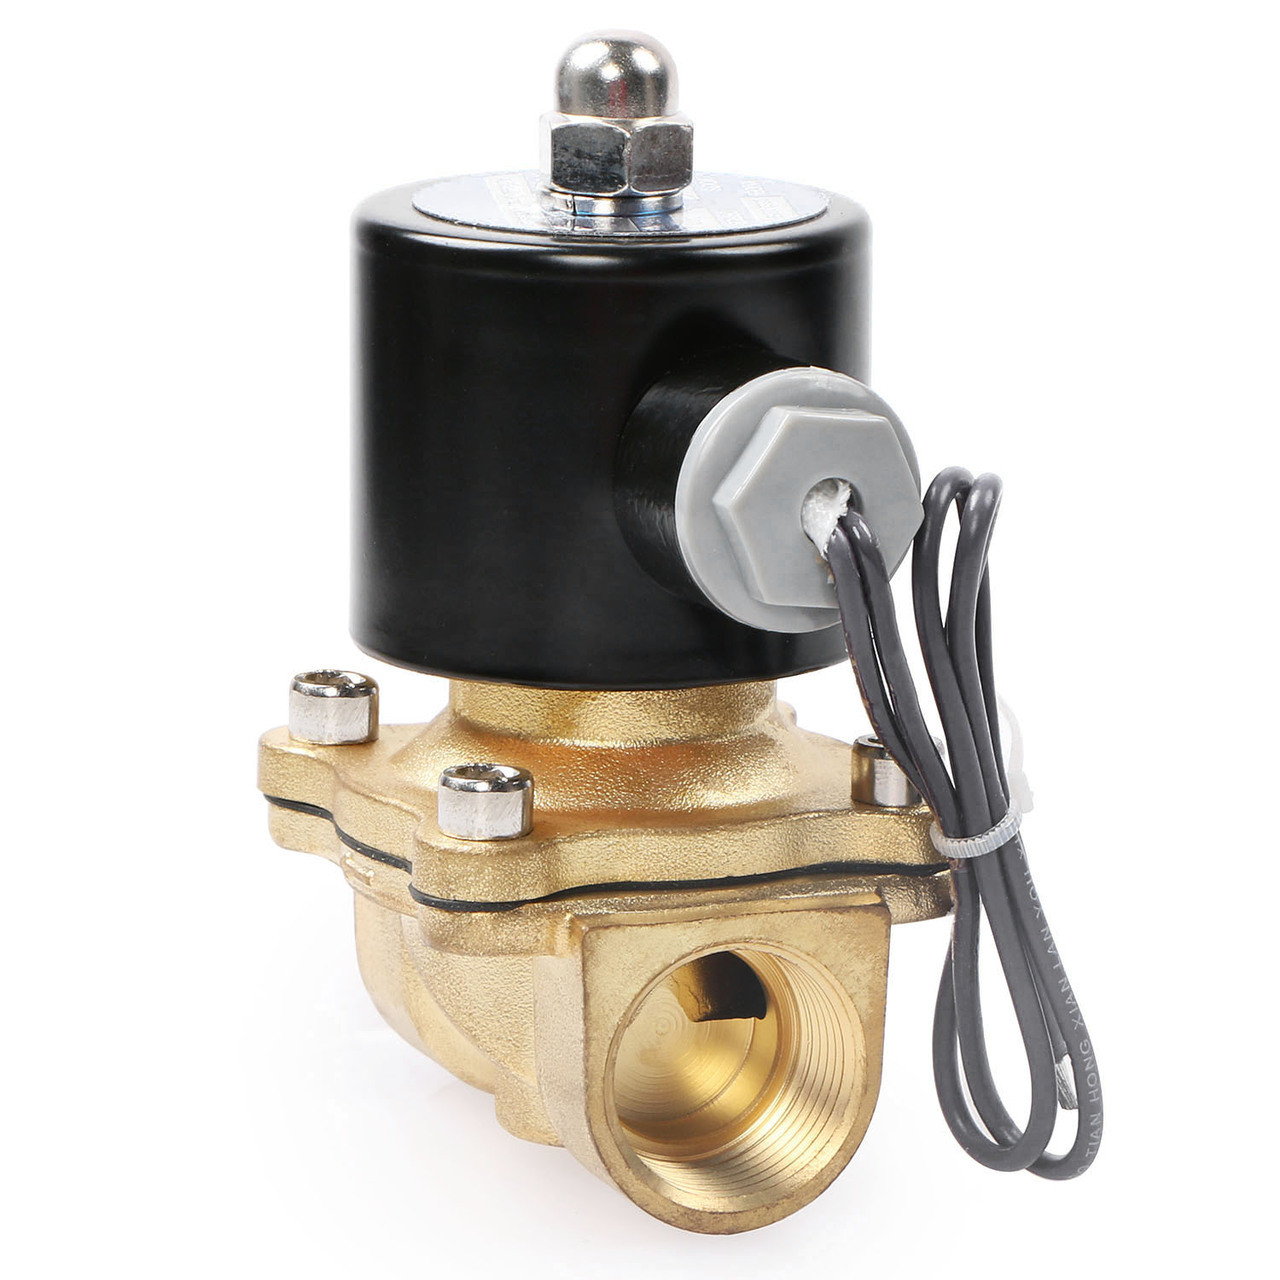 "USSOLID Electric Solenoid Valve- 3/4"" 24V DC Solenoid Valve Brass Body Normally Closed, VITON SEAL"